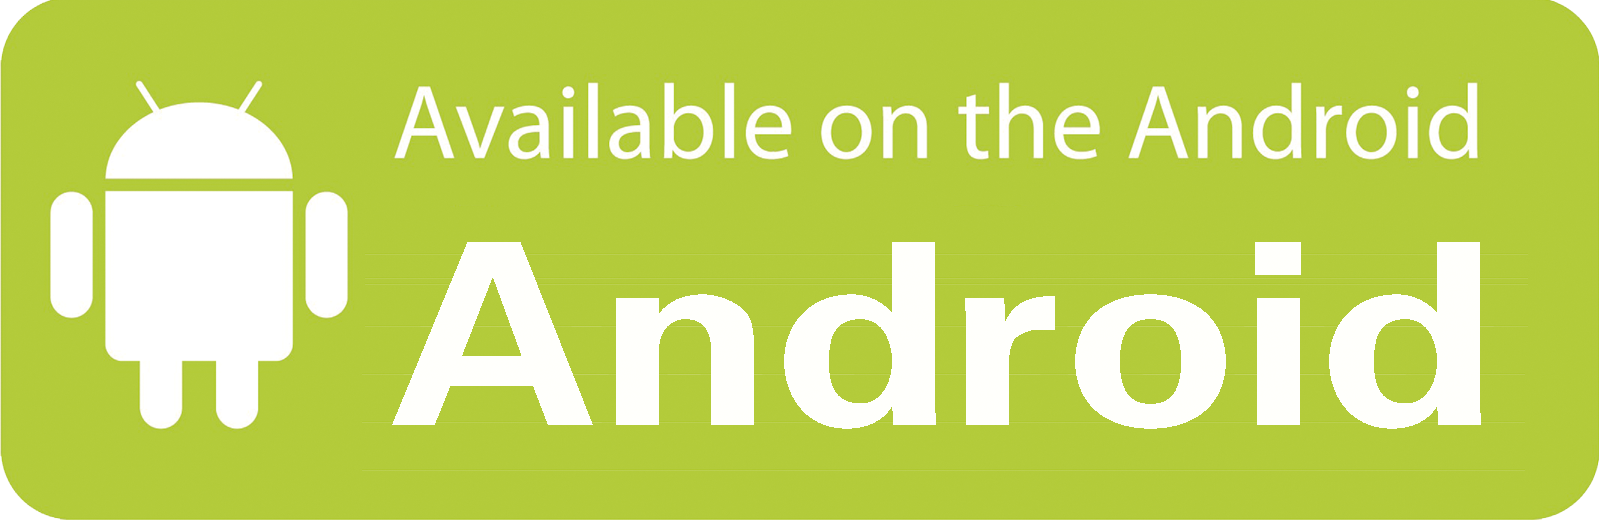 Download Android App And Get Online Updates